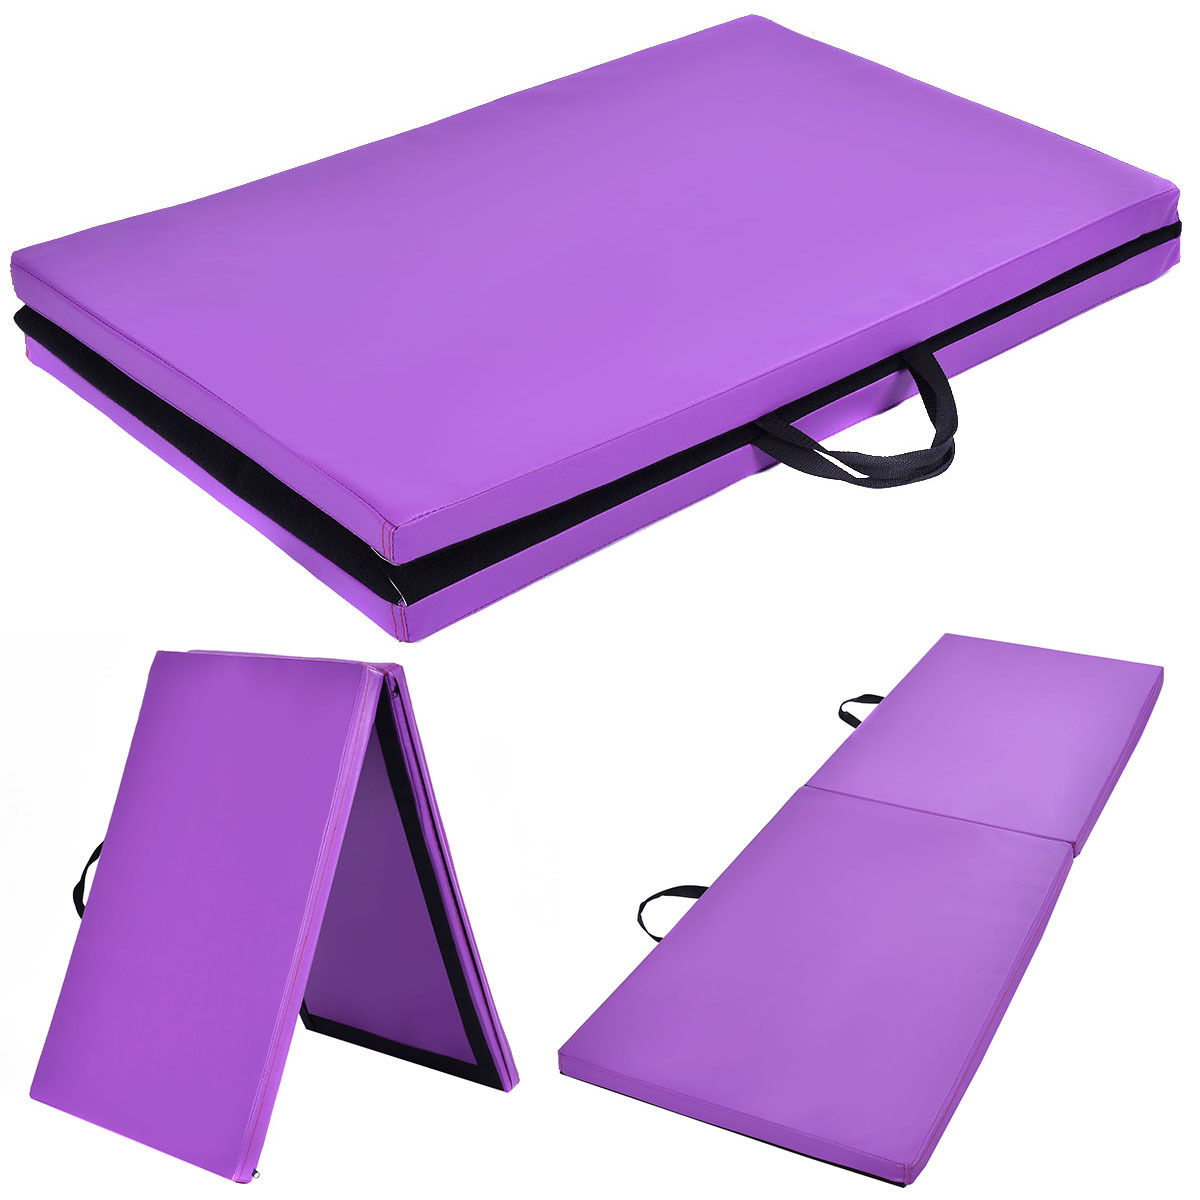 costway 6u0027x mat thick two folding panel gym fitness exercise purple